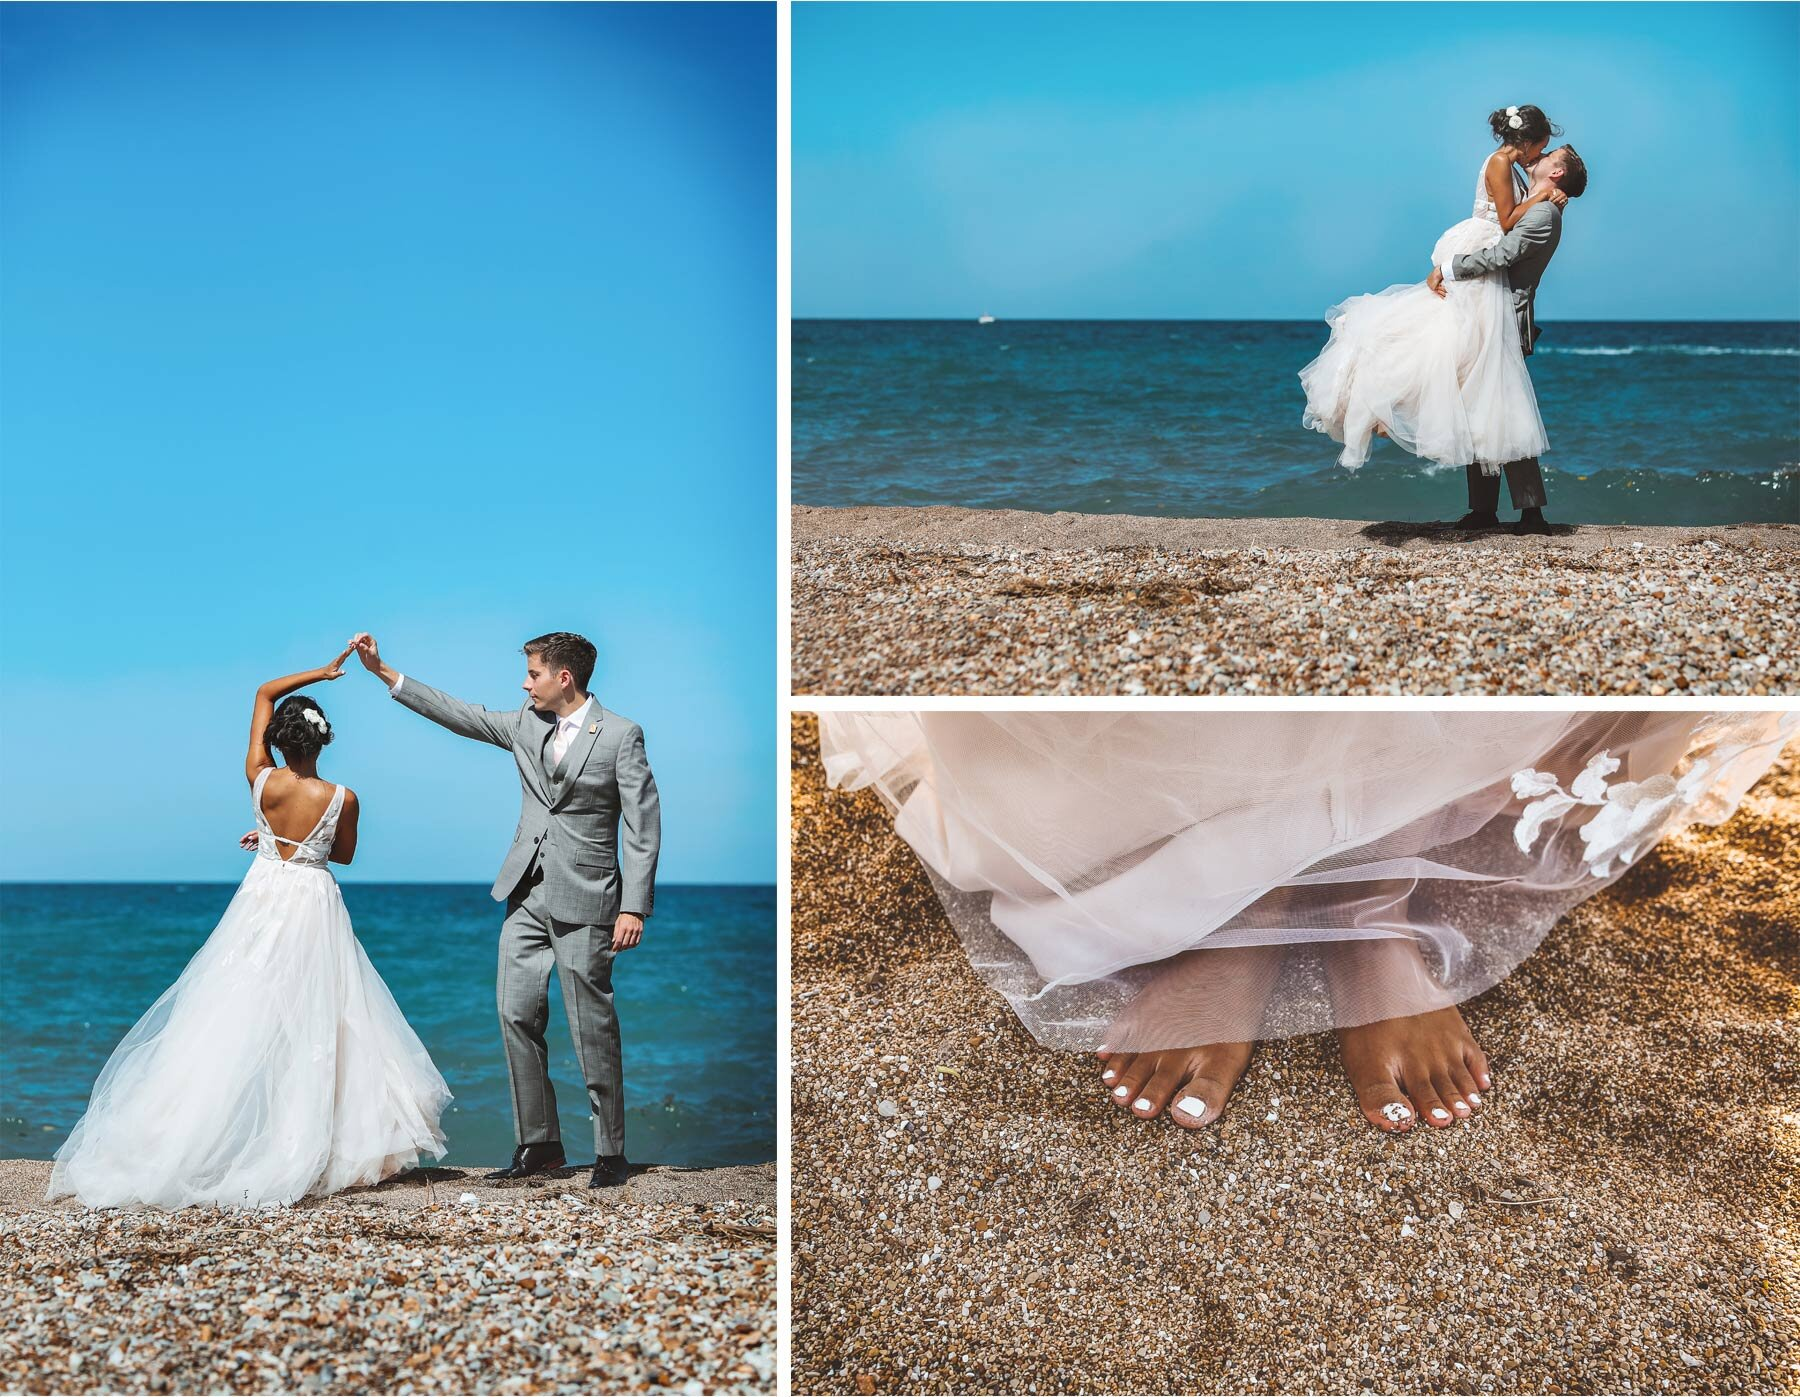 11-Wedding-by-Andrew-Vick-Photography-Chicago-Illinois-Groom-Bride-Shore-Beach-Lake-Michigan-Sand-Feet-Ashley-and-Nicholas.jpg